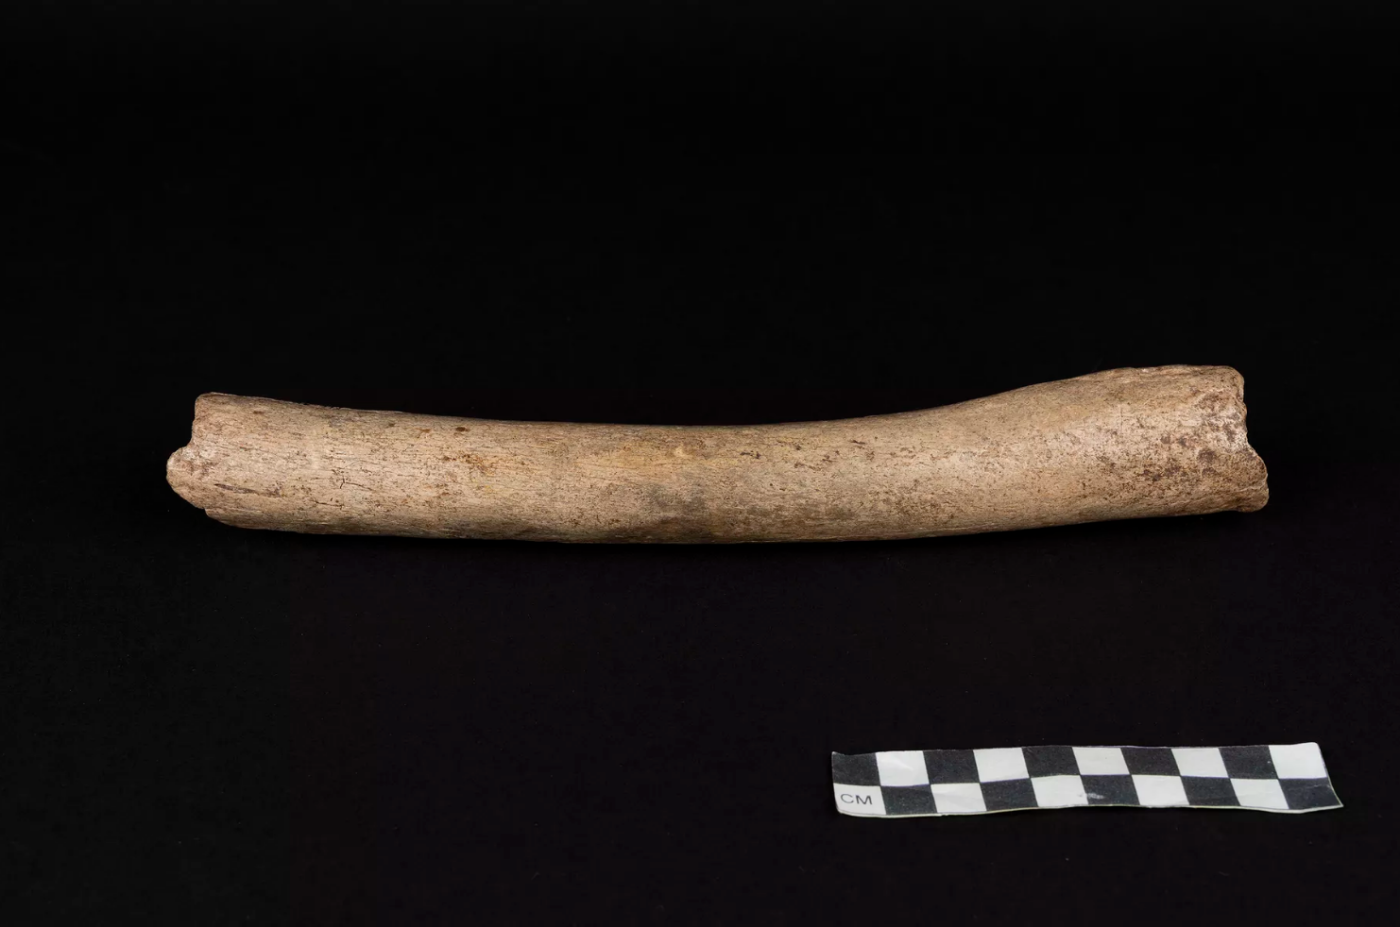 A Neanderthal thigh bone known as the Hohlenstein-Stadel femur, discovered in German in 1937. Photo by Oleg Kuchar/Museum Ulm